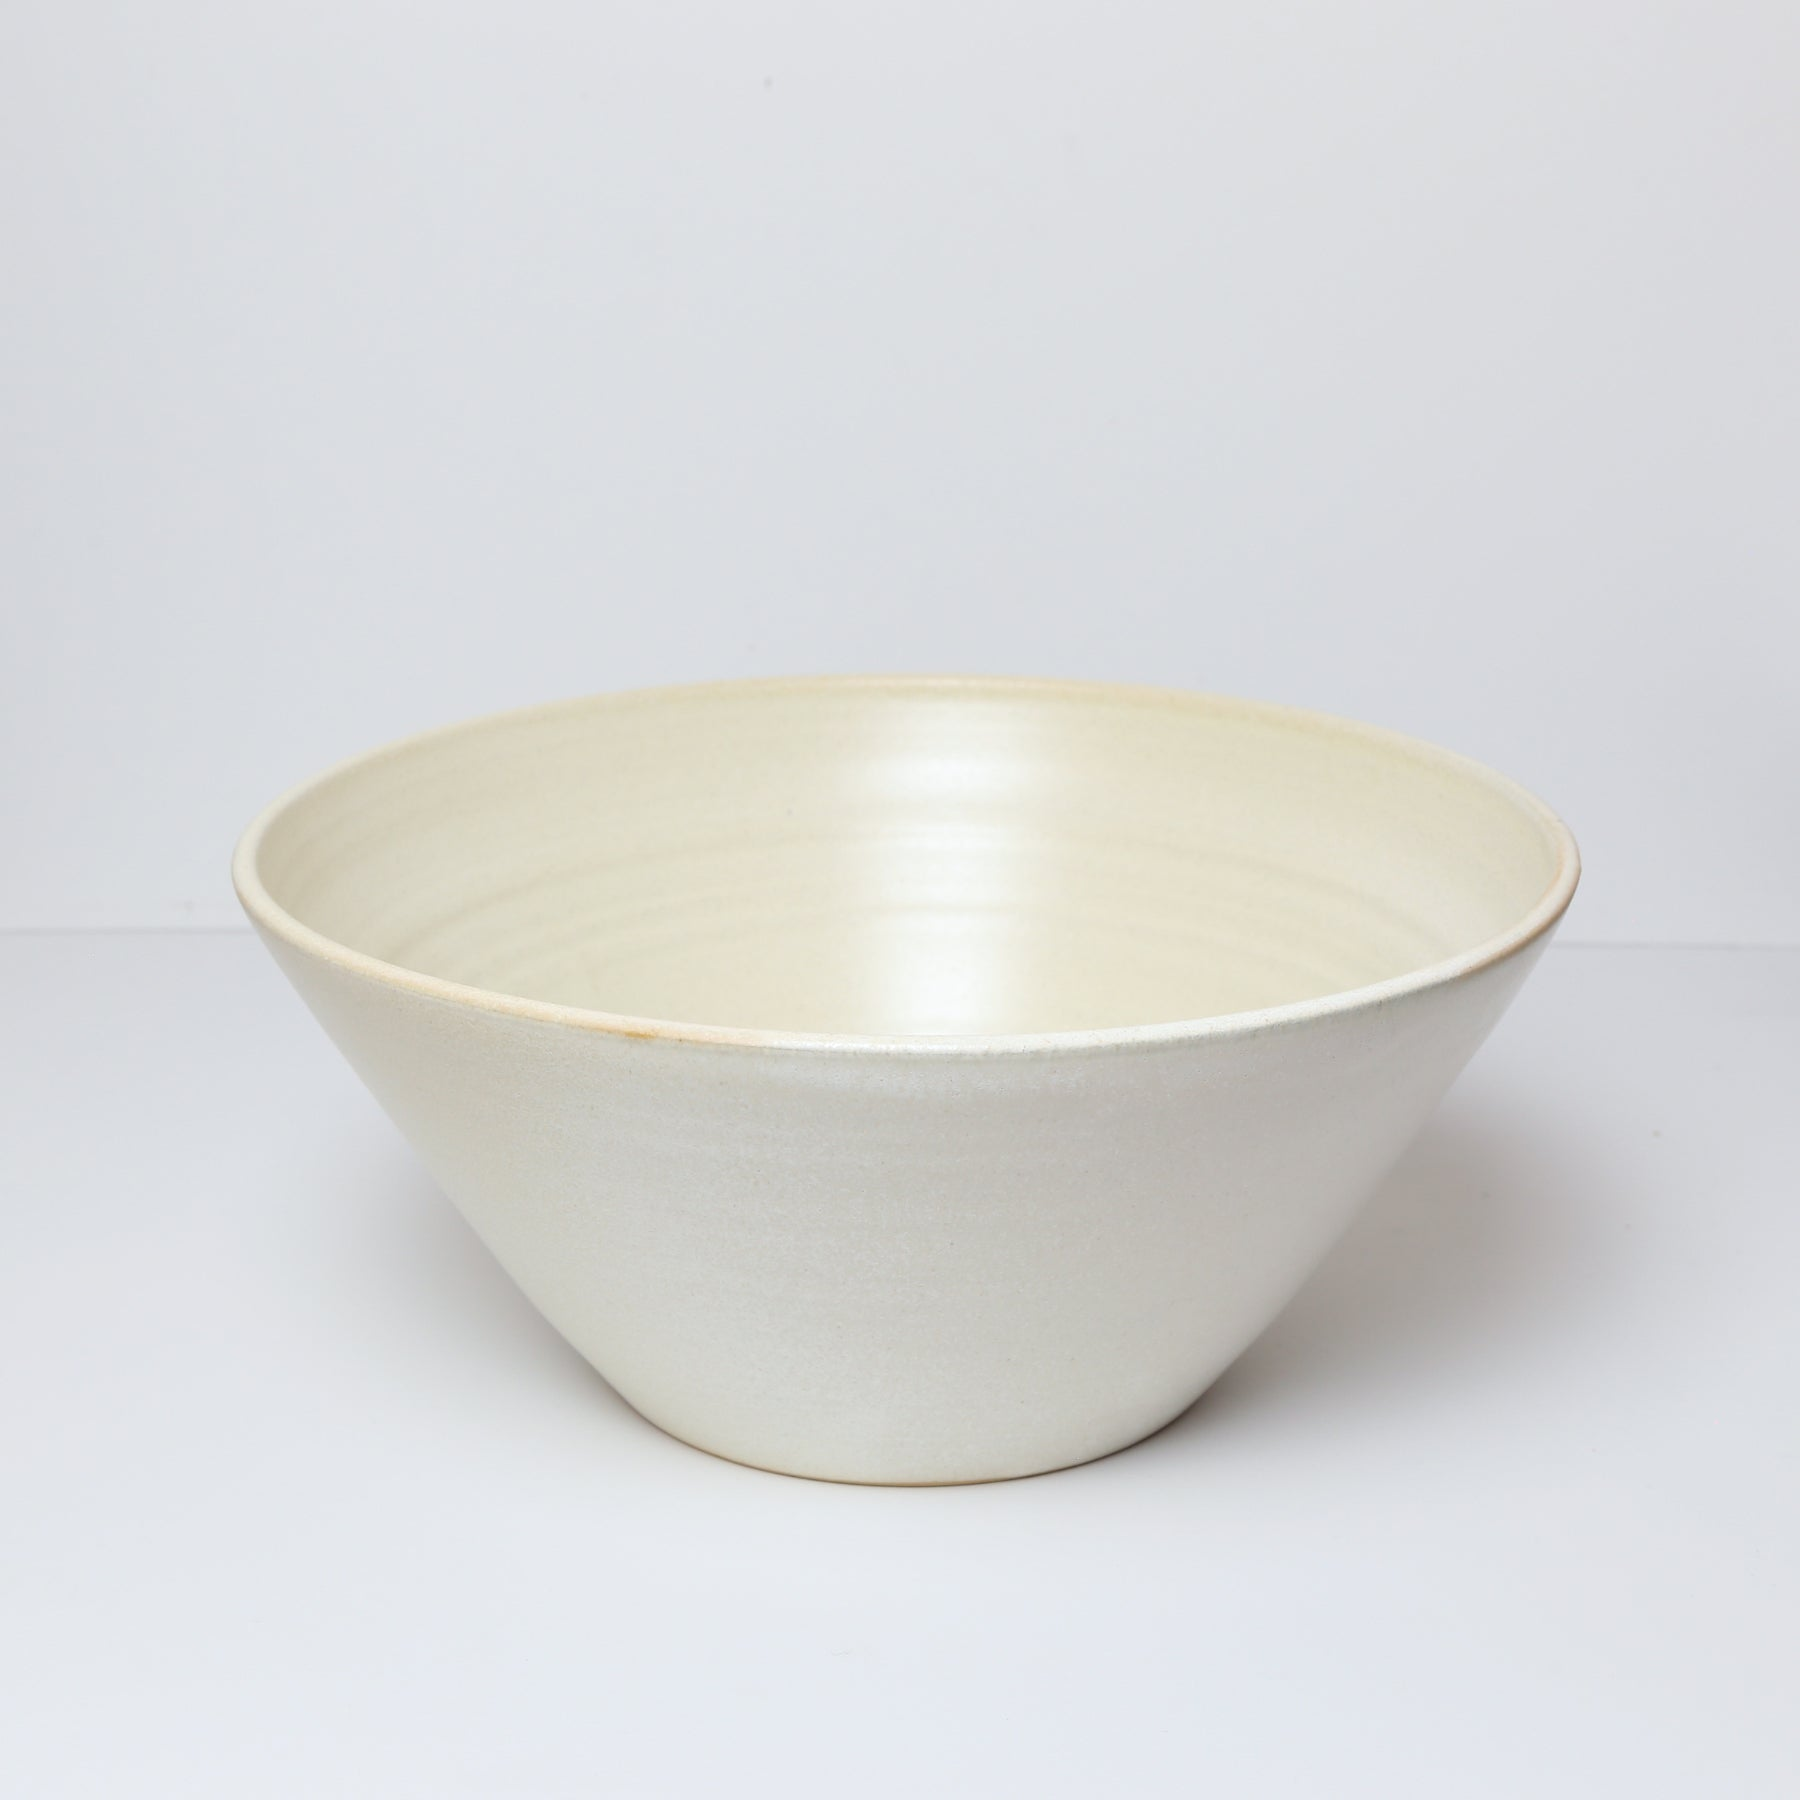 Medium Bowl,  Creamy White